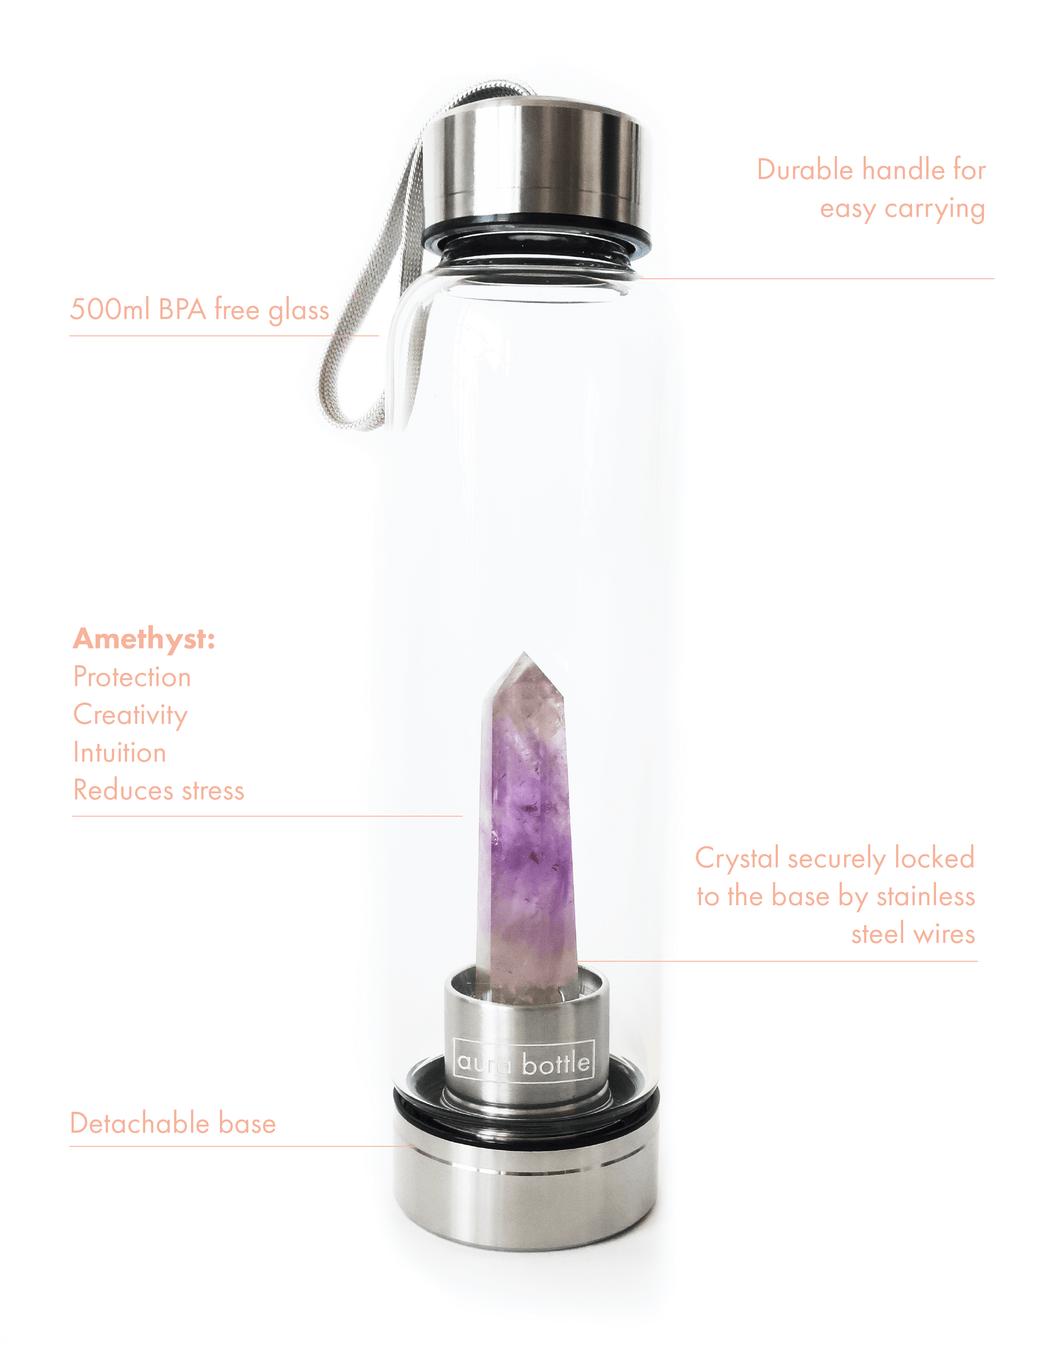 Amethyst Aura Bottle™